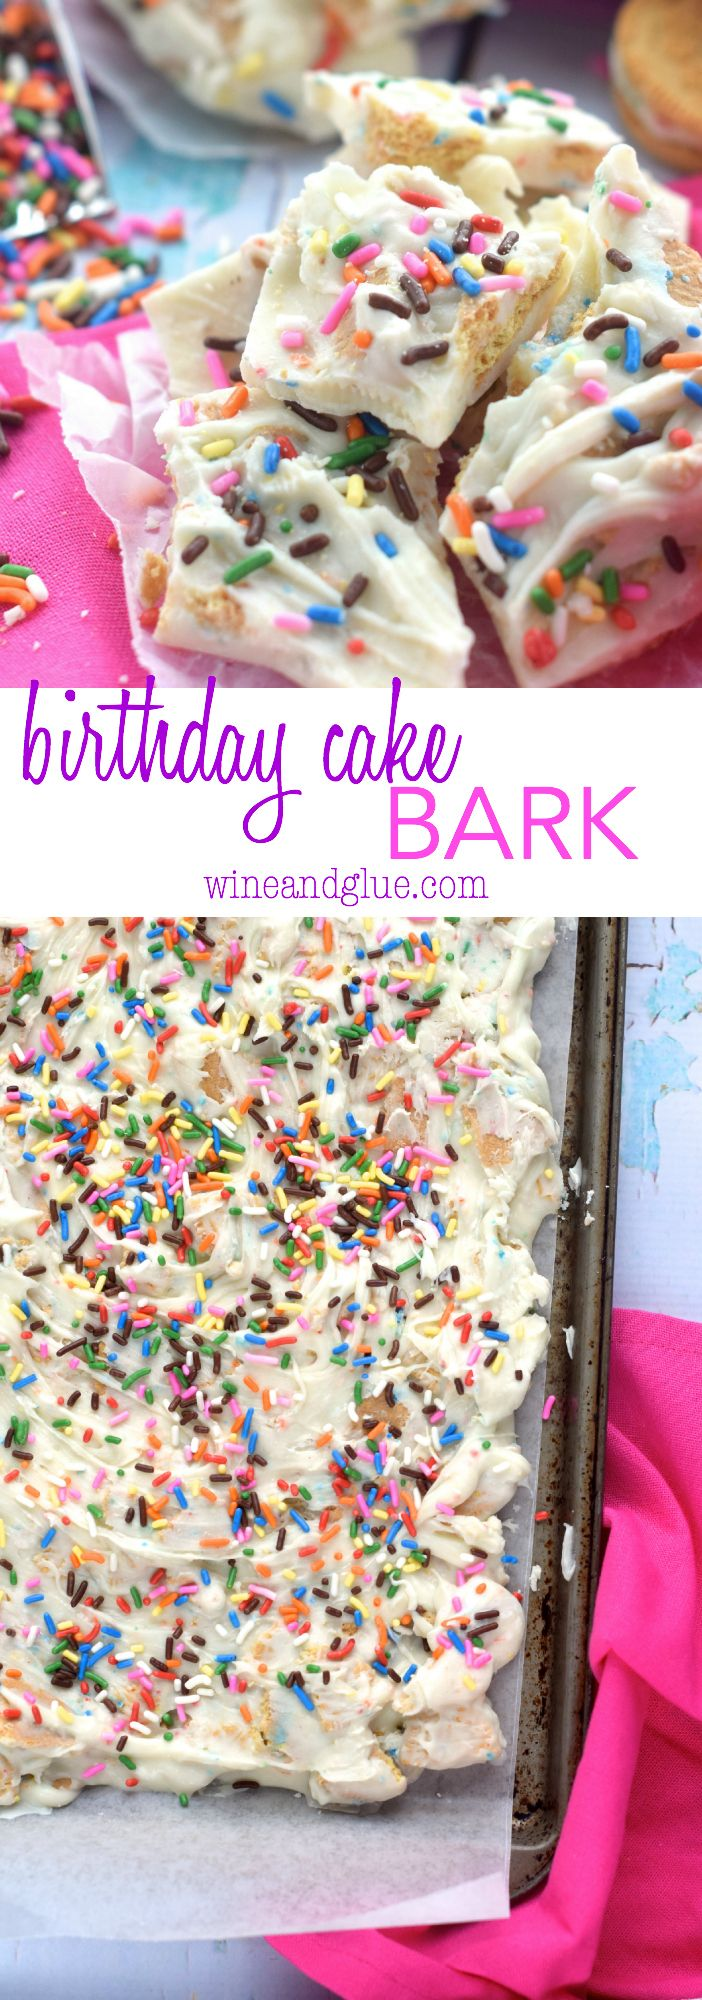 This Birthday Cake Bark is really easy to make, but irresistible!: